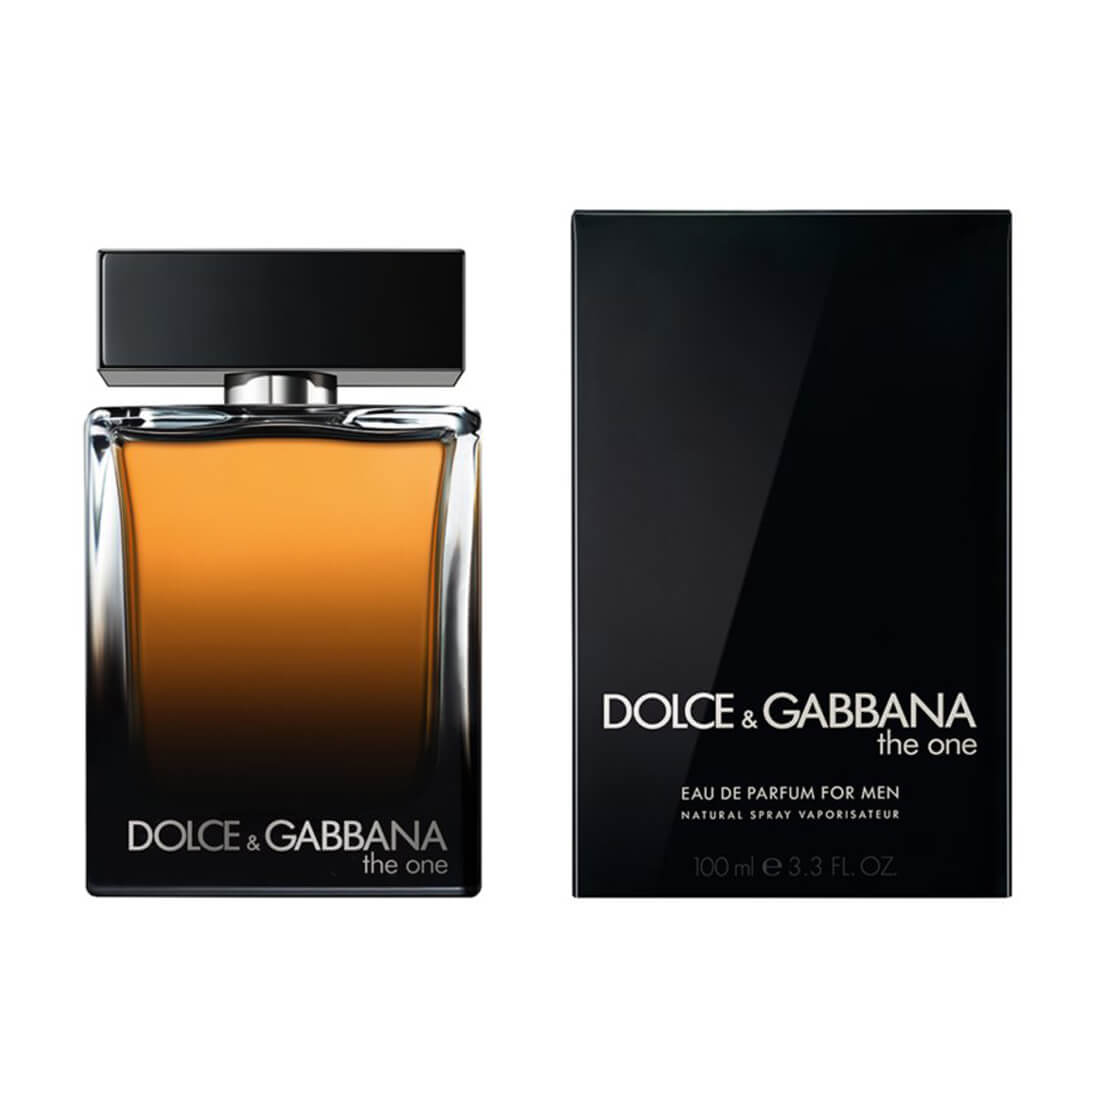 Dolce & Gabbana The One Eau De Perfume For Men - 100ml